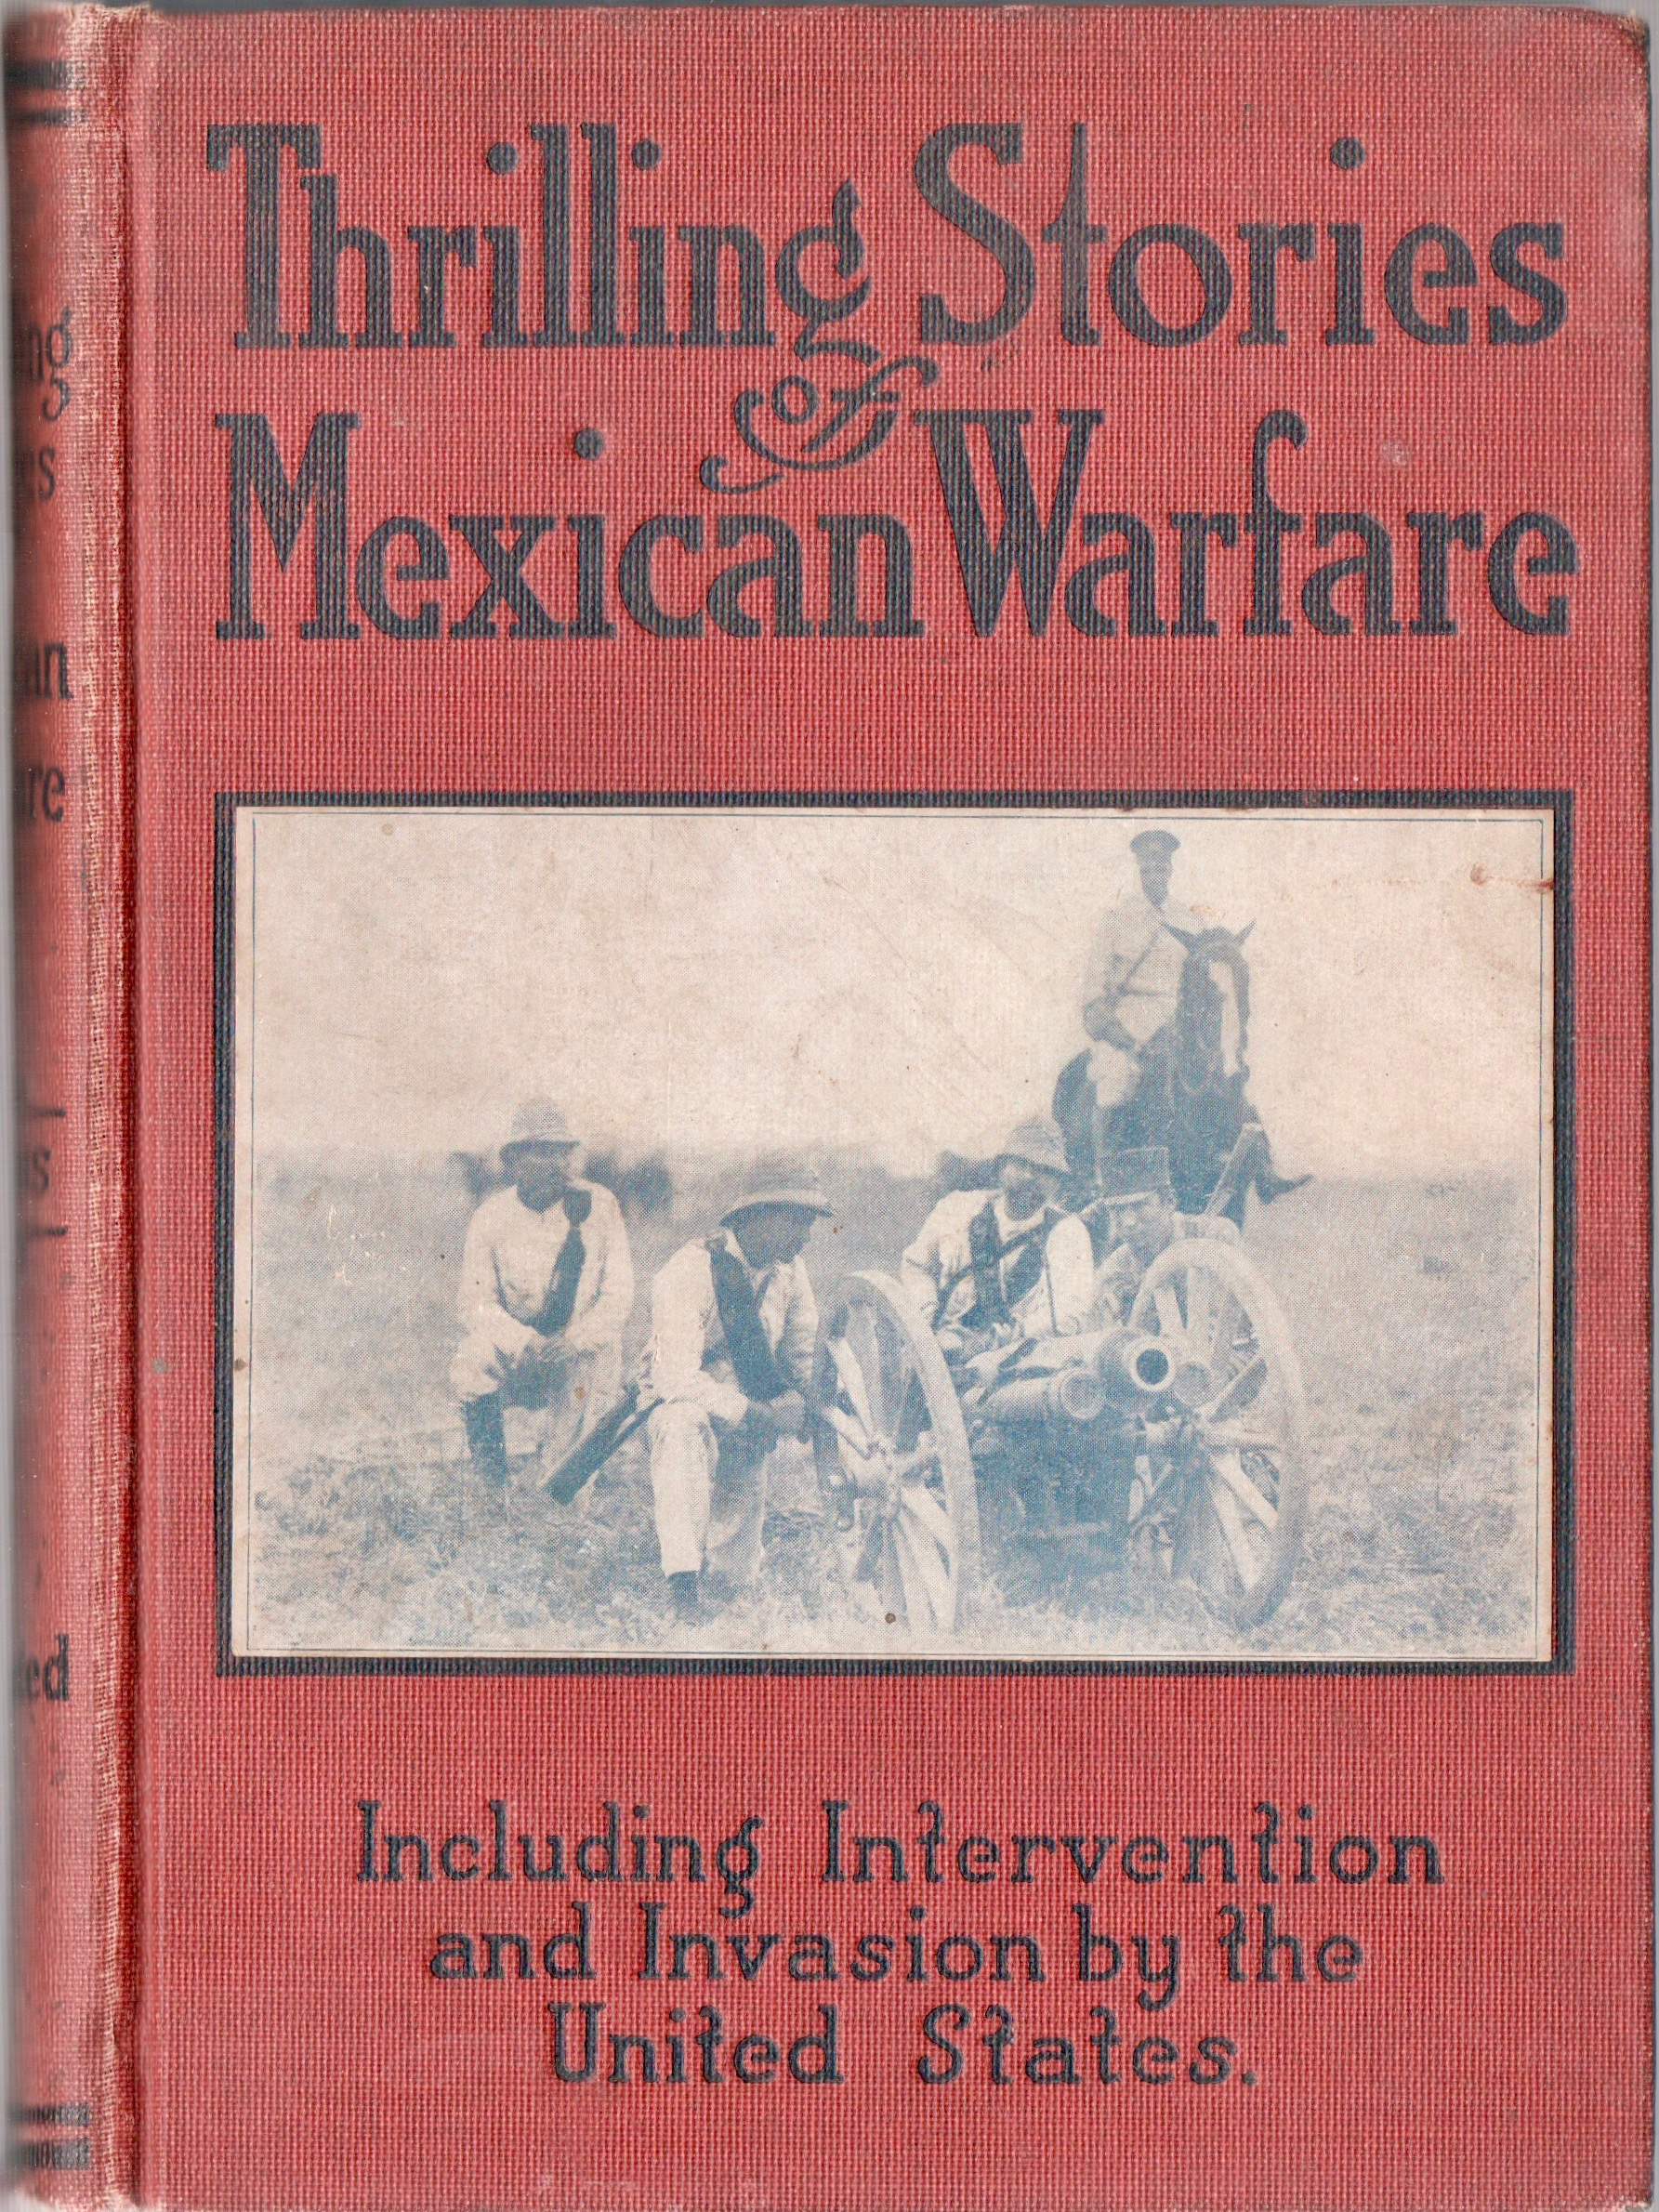 Thrilling Stories of Mexican Warfare Cover.jpg